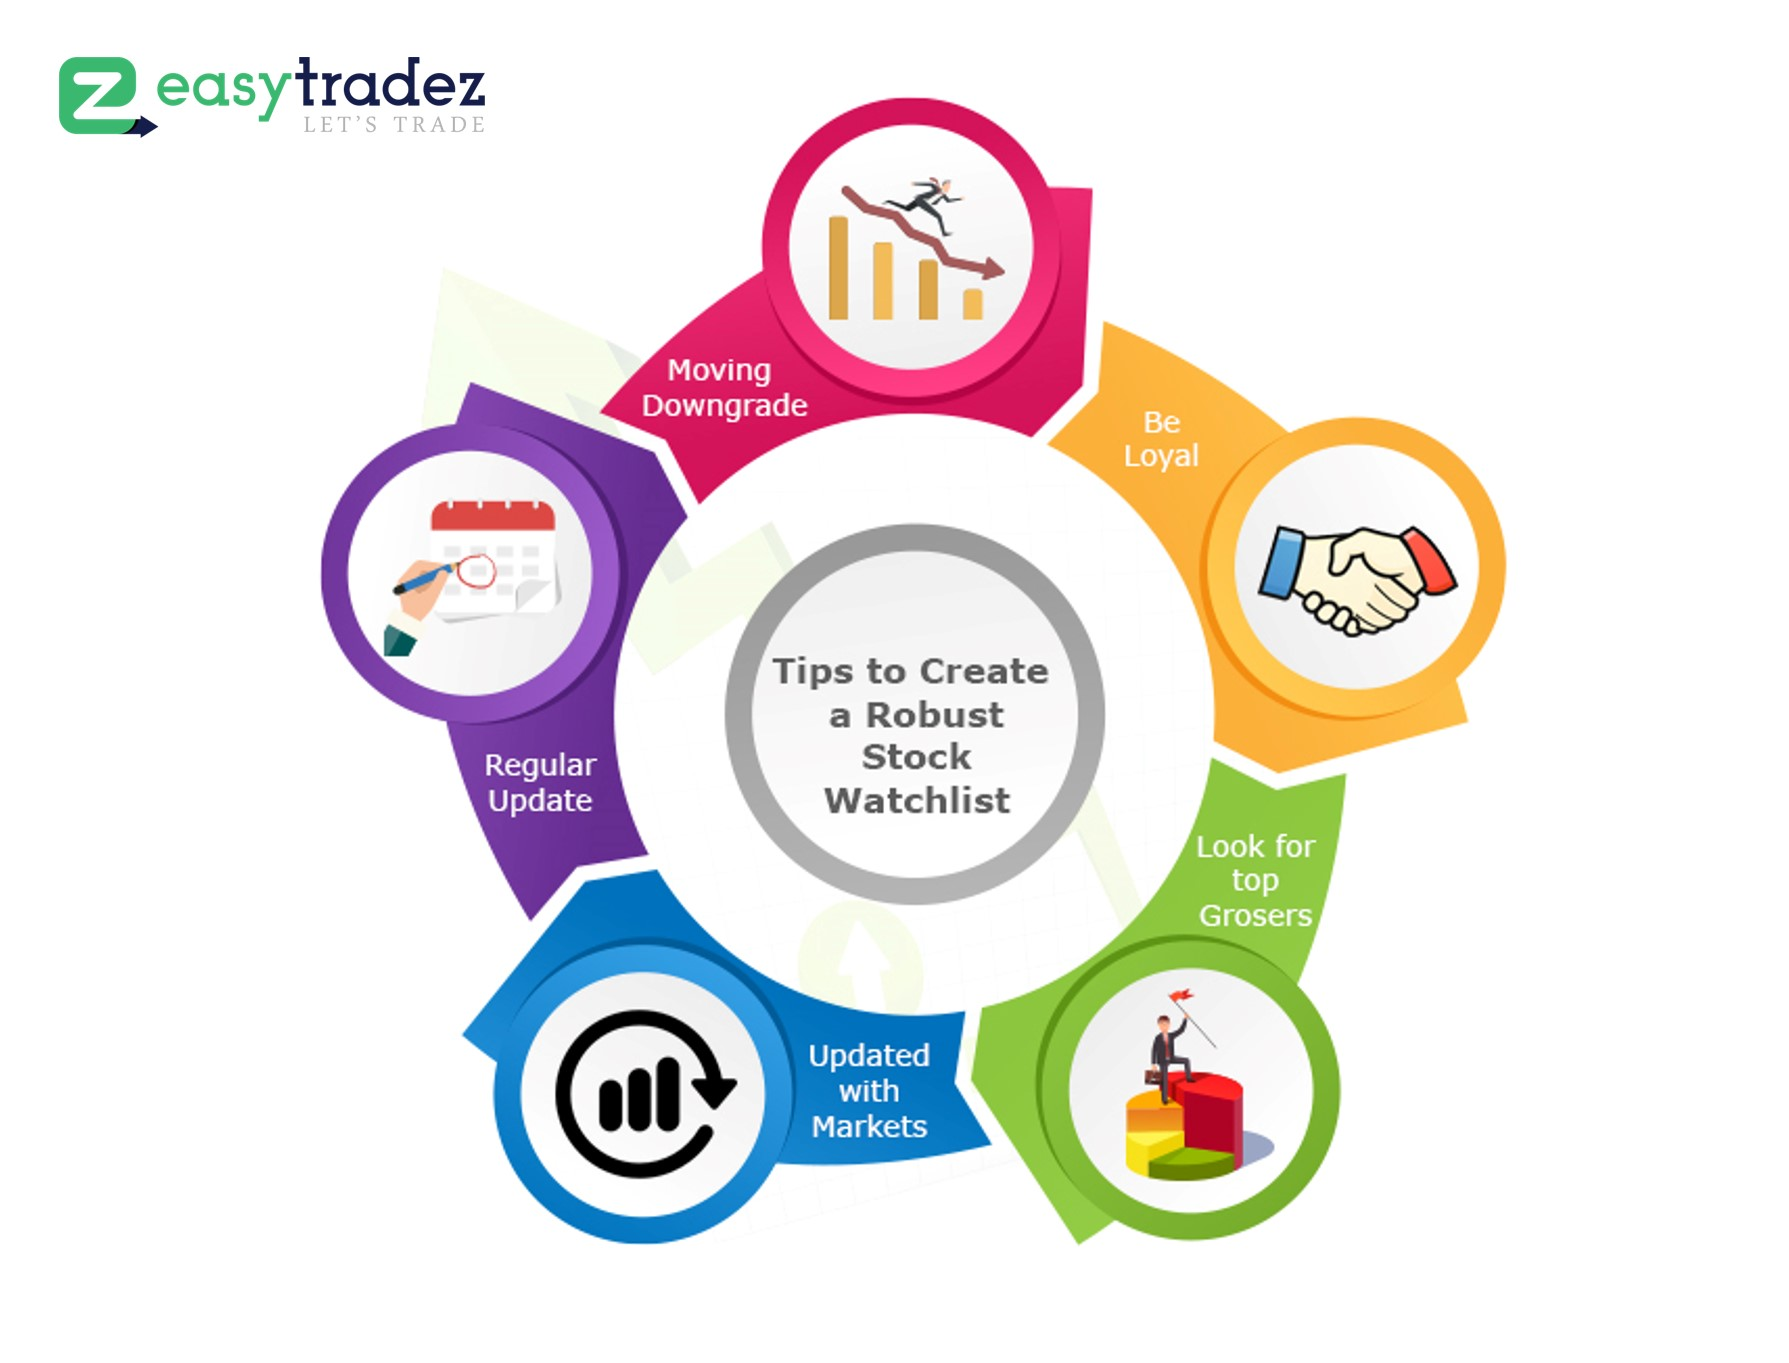 5 Tips to Create a Robust Stock Watchlist for your Favourite Stocks